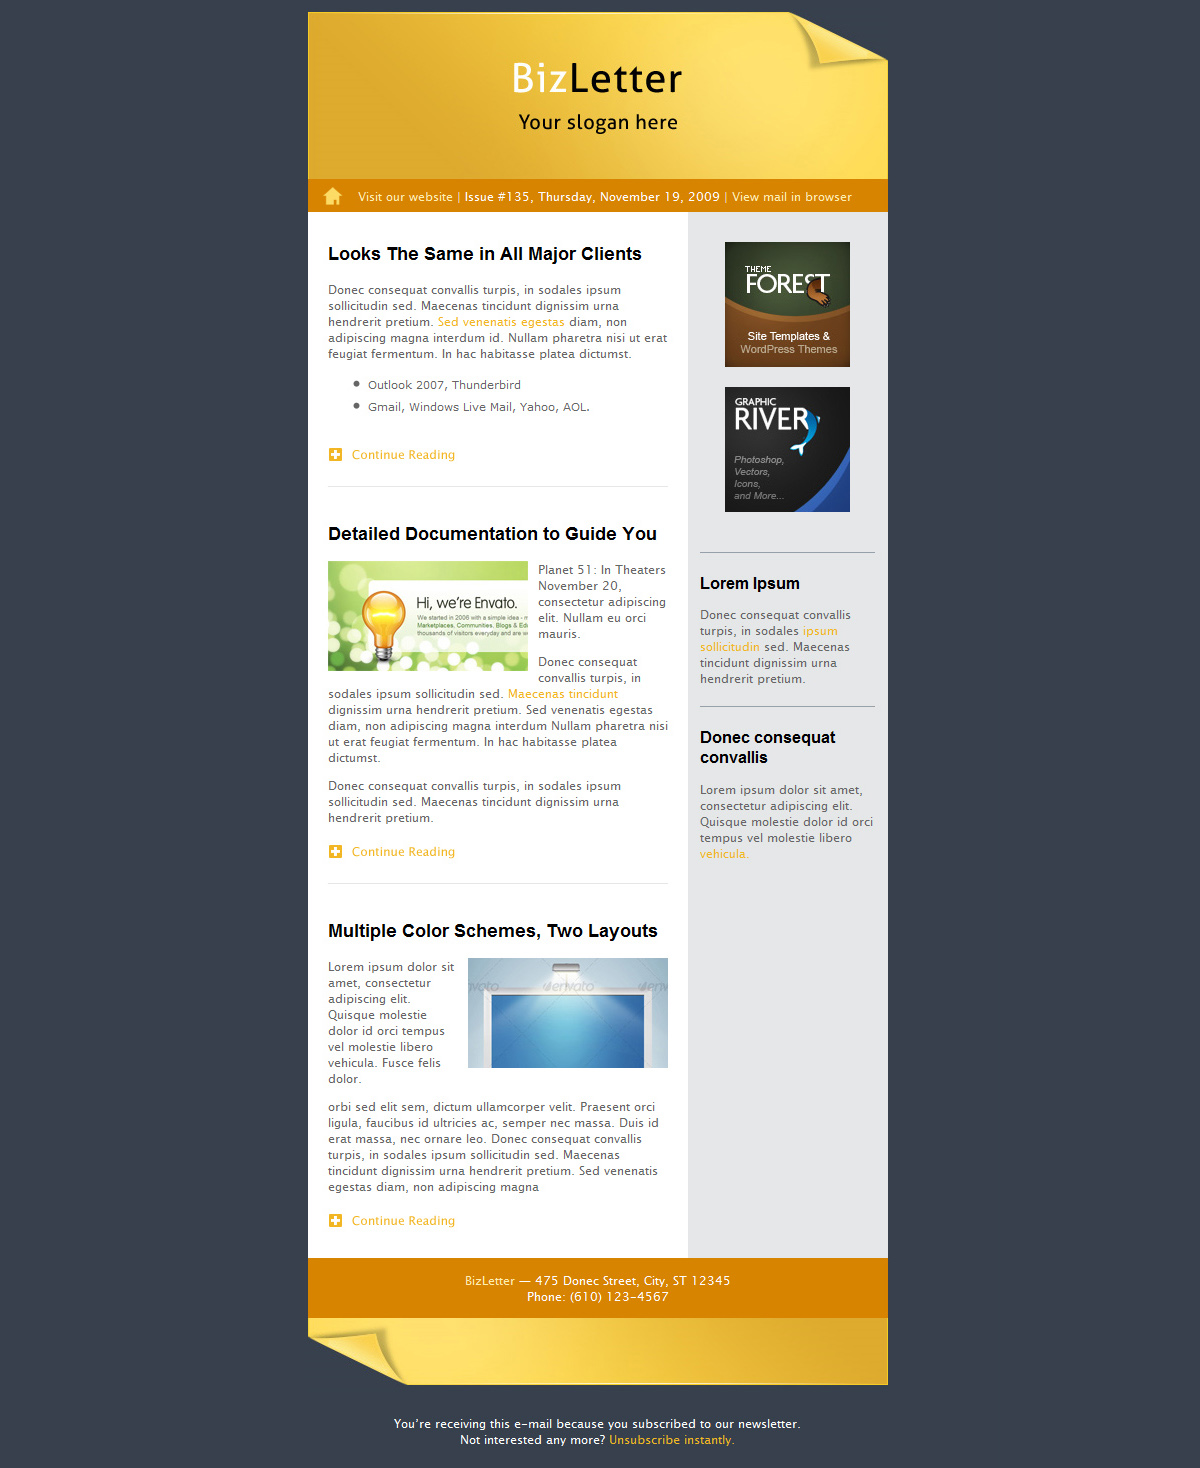 BizLetter - E-mail Template - 5 colors - right-sidebar layout in yellow/orange.